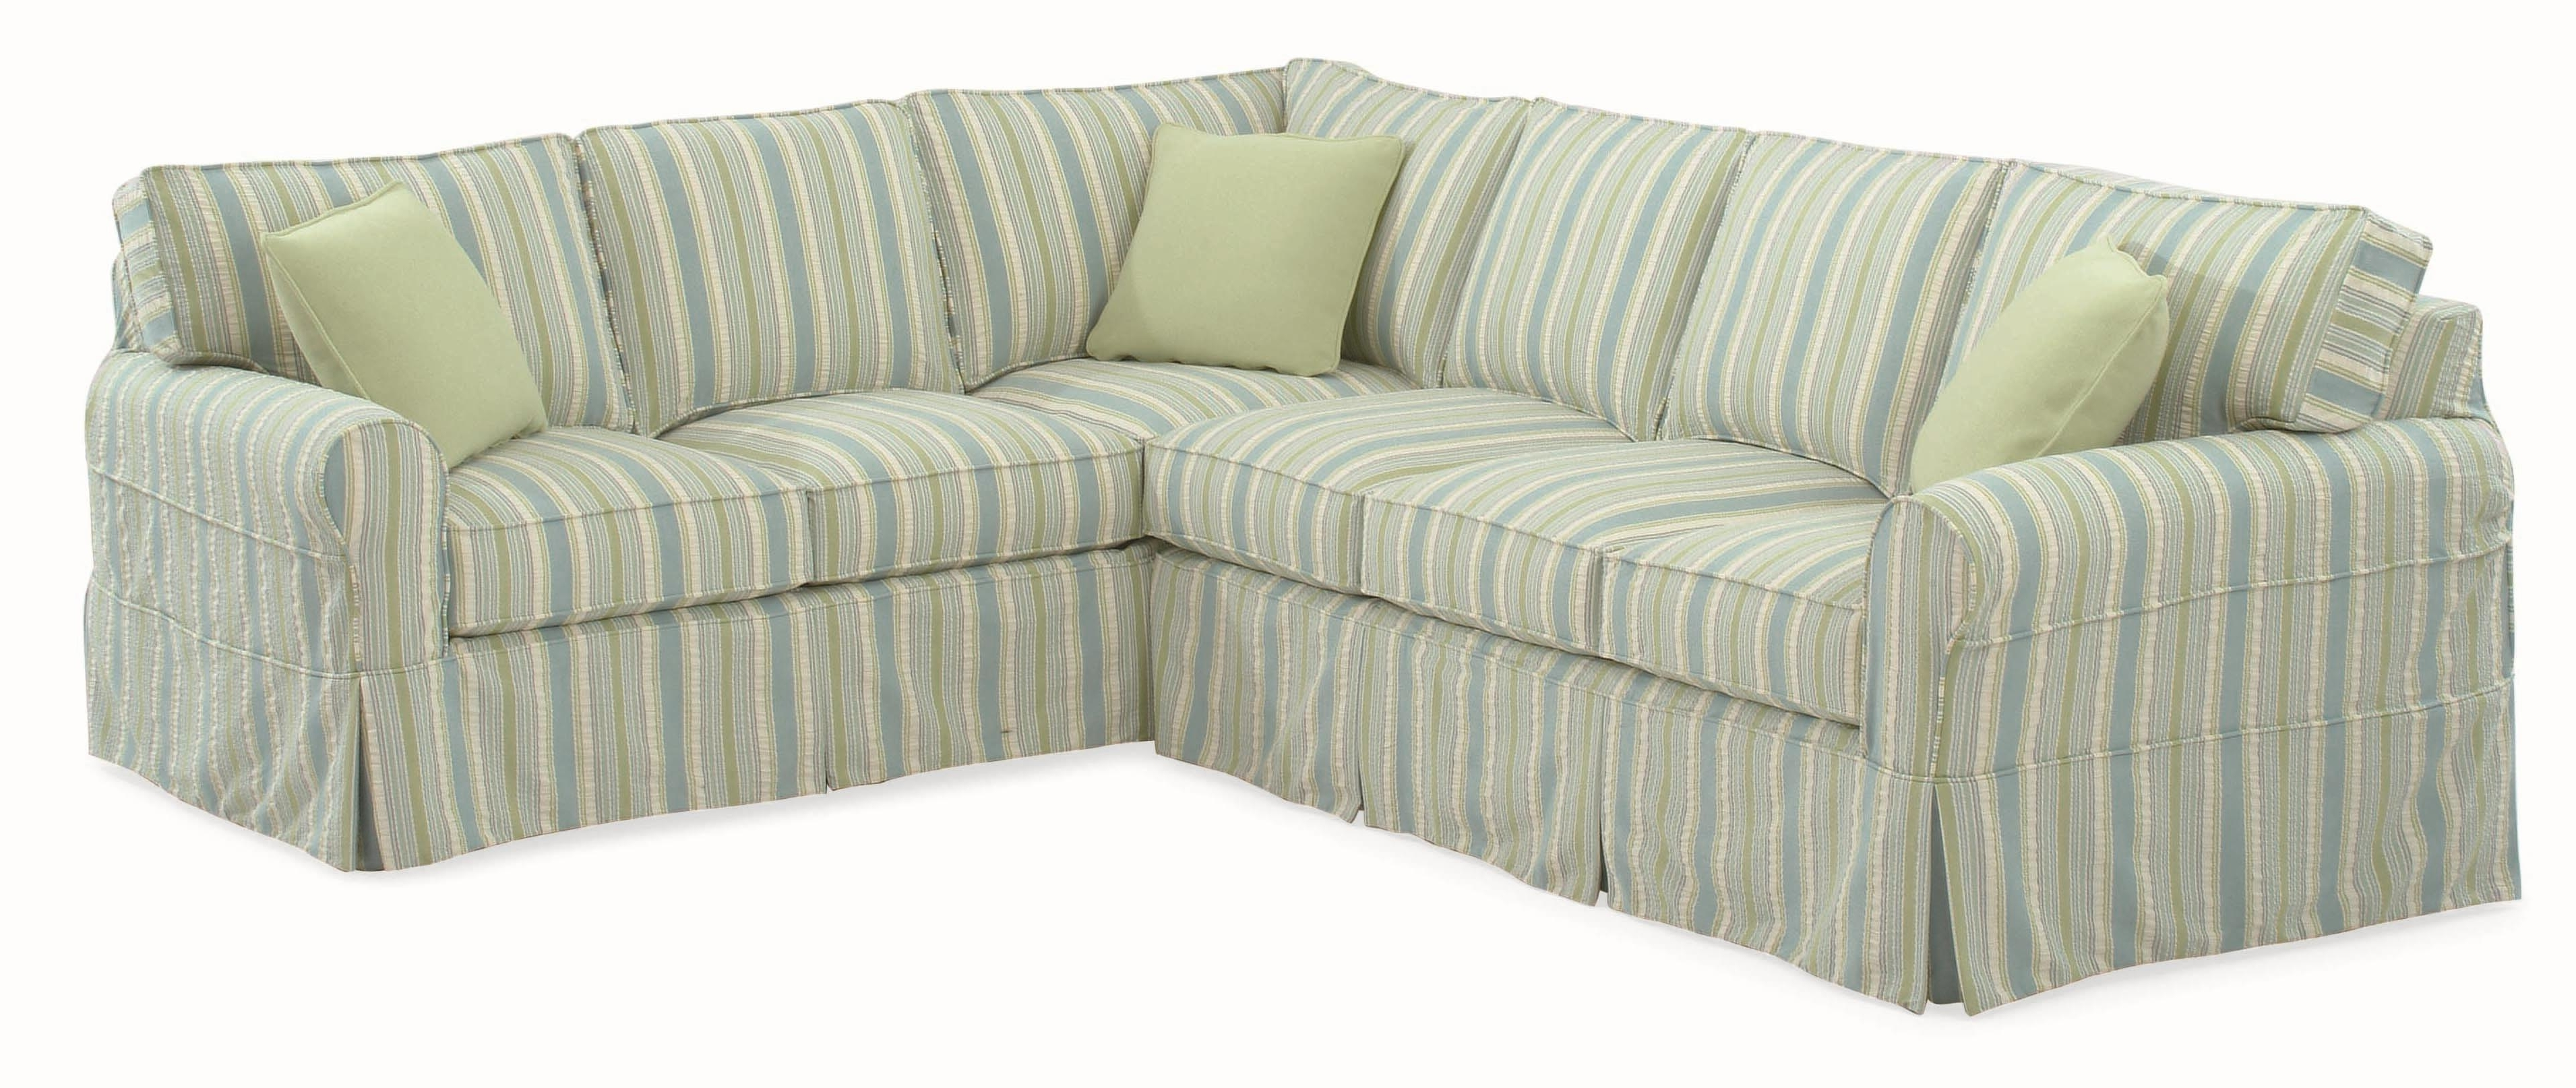 Braxton Culler 728 Casual Sectional Sofa With Rolled Arms And For Well Known Braxton Sectional Sofas (View 5 of 15)